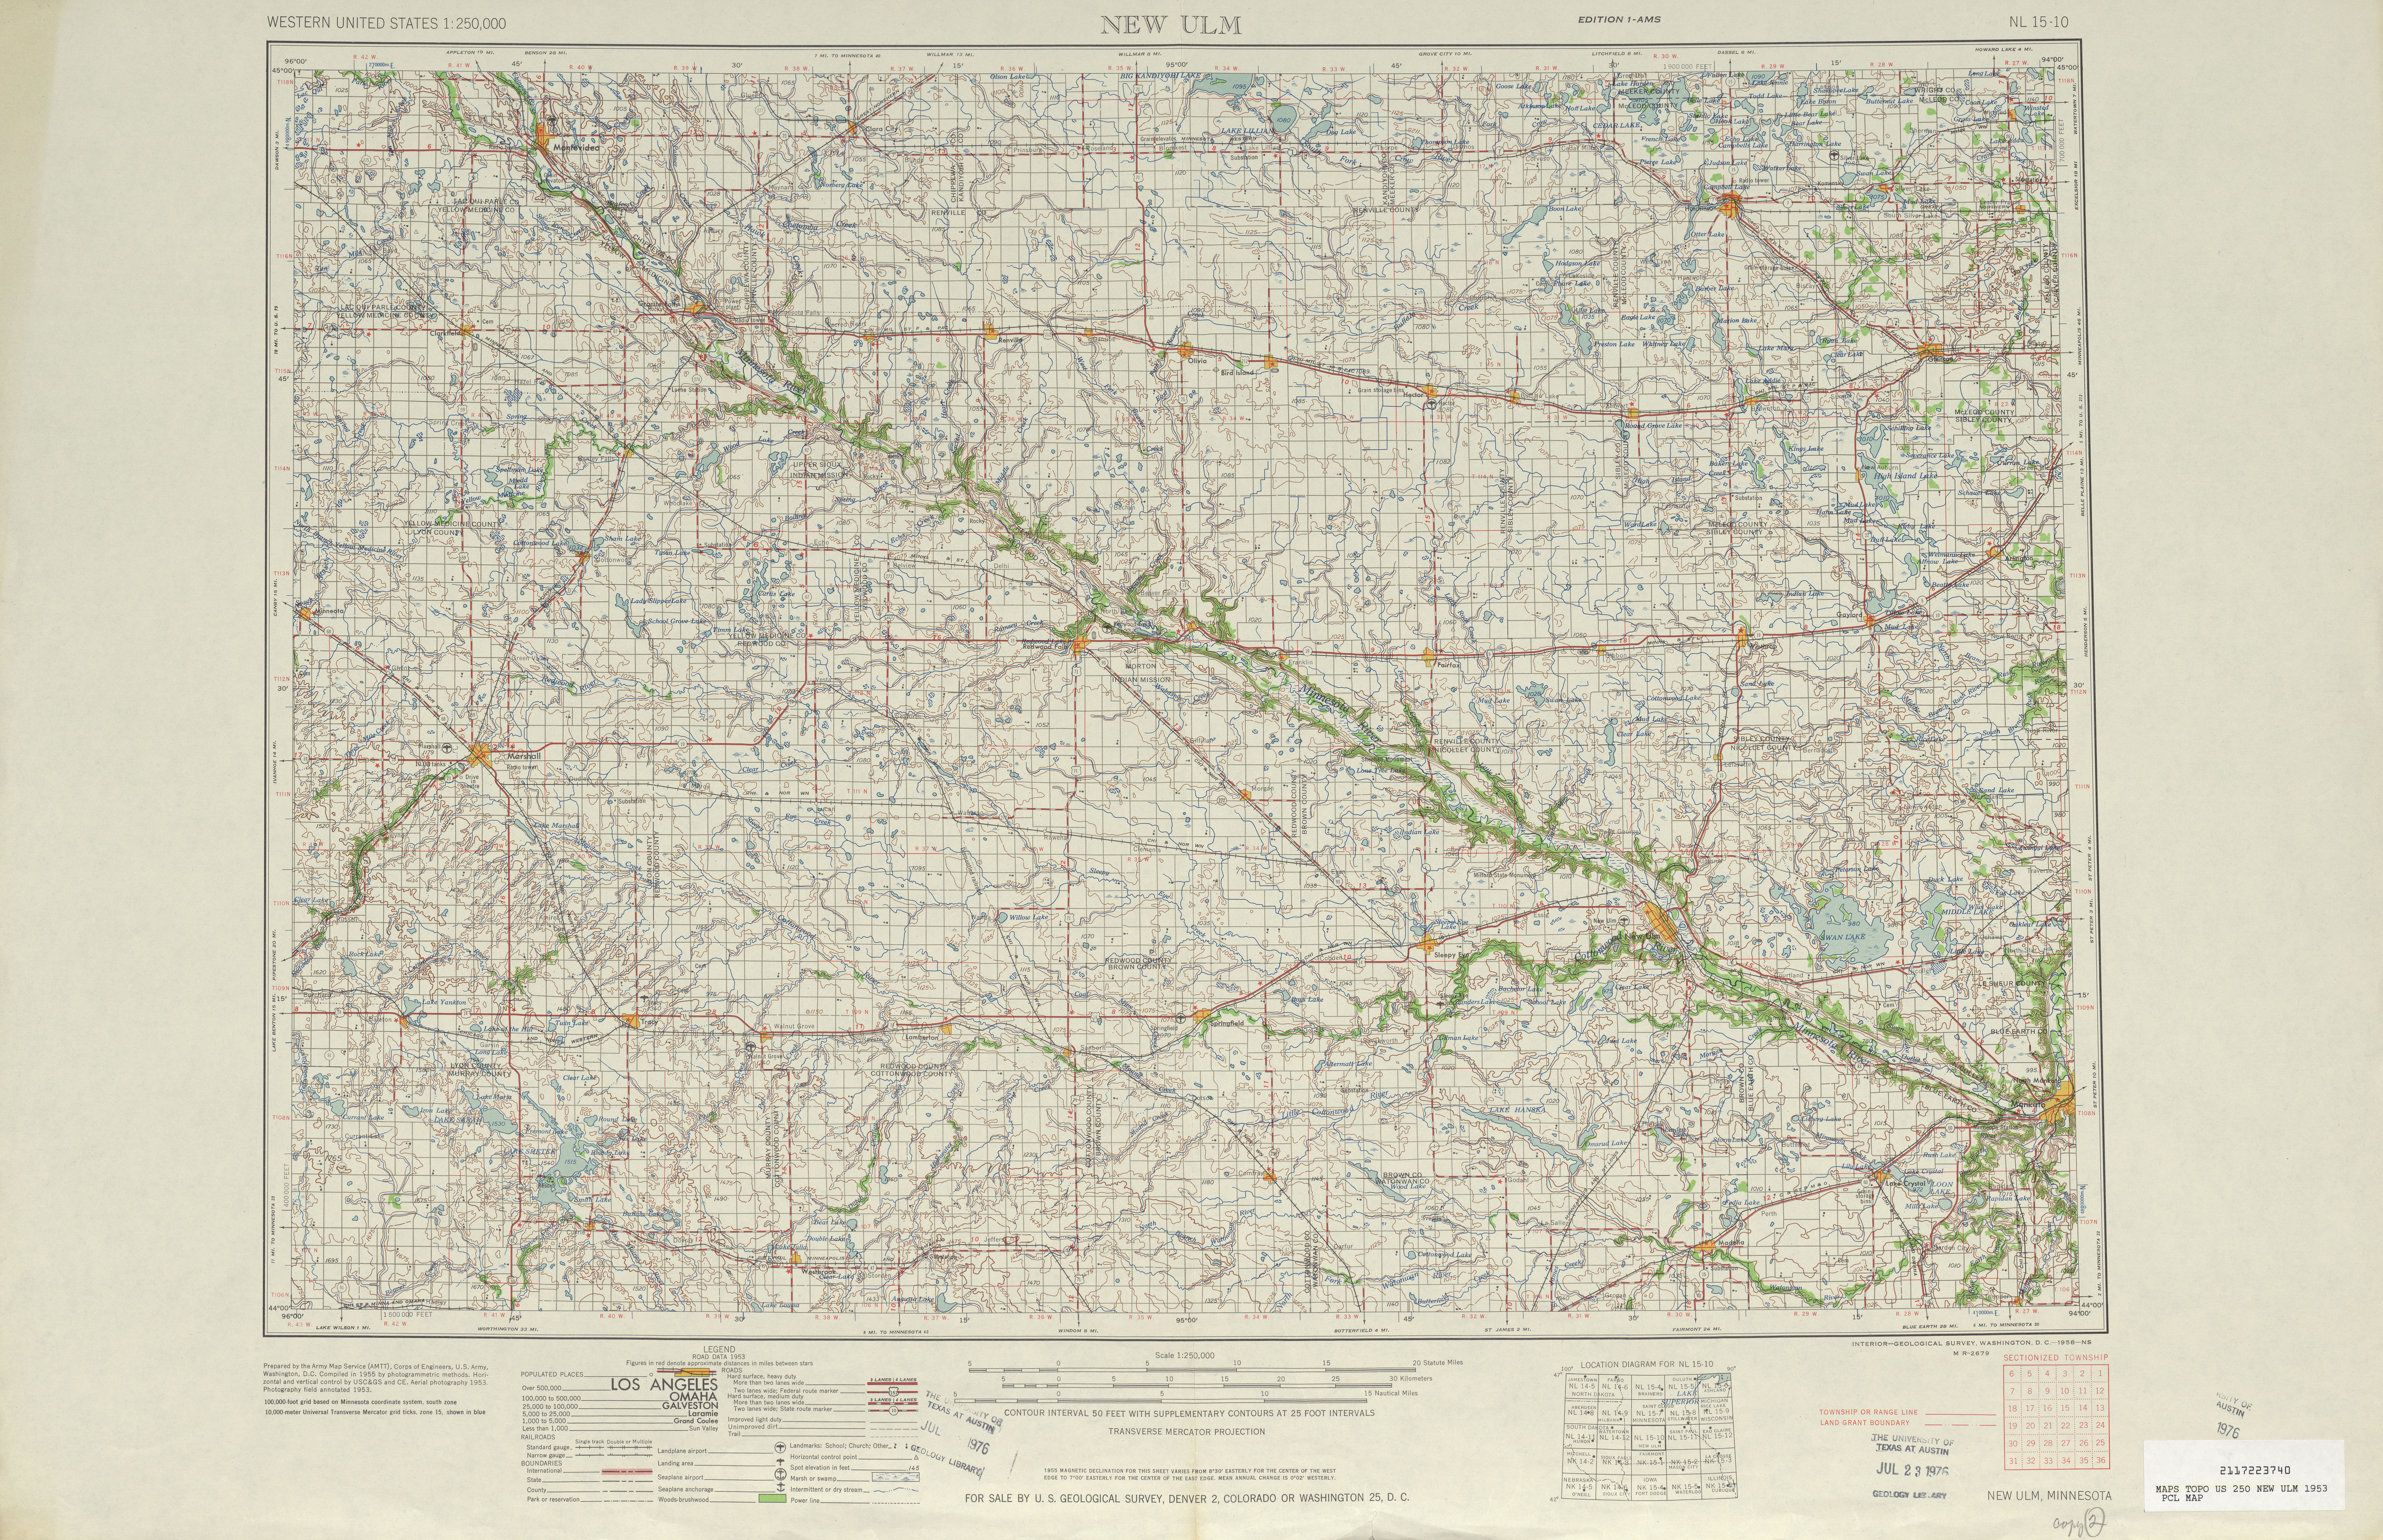 New Ulm Topographic Map Sheet, United States 1953